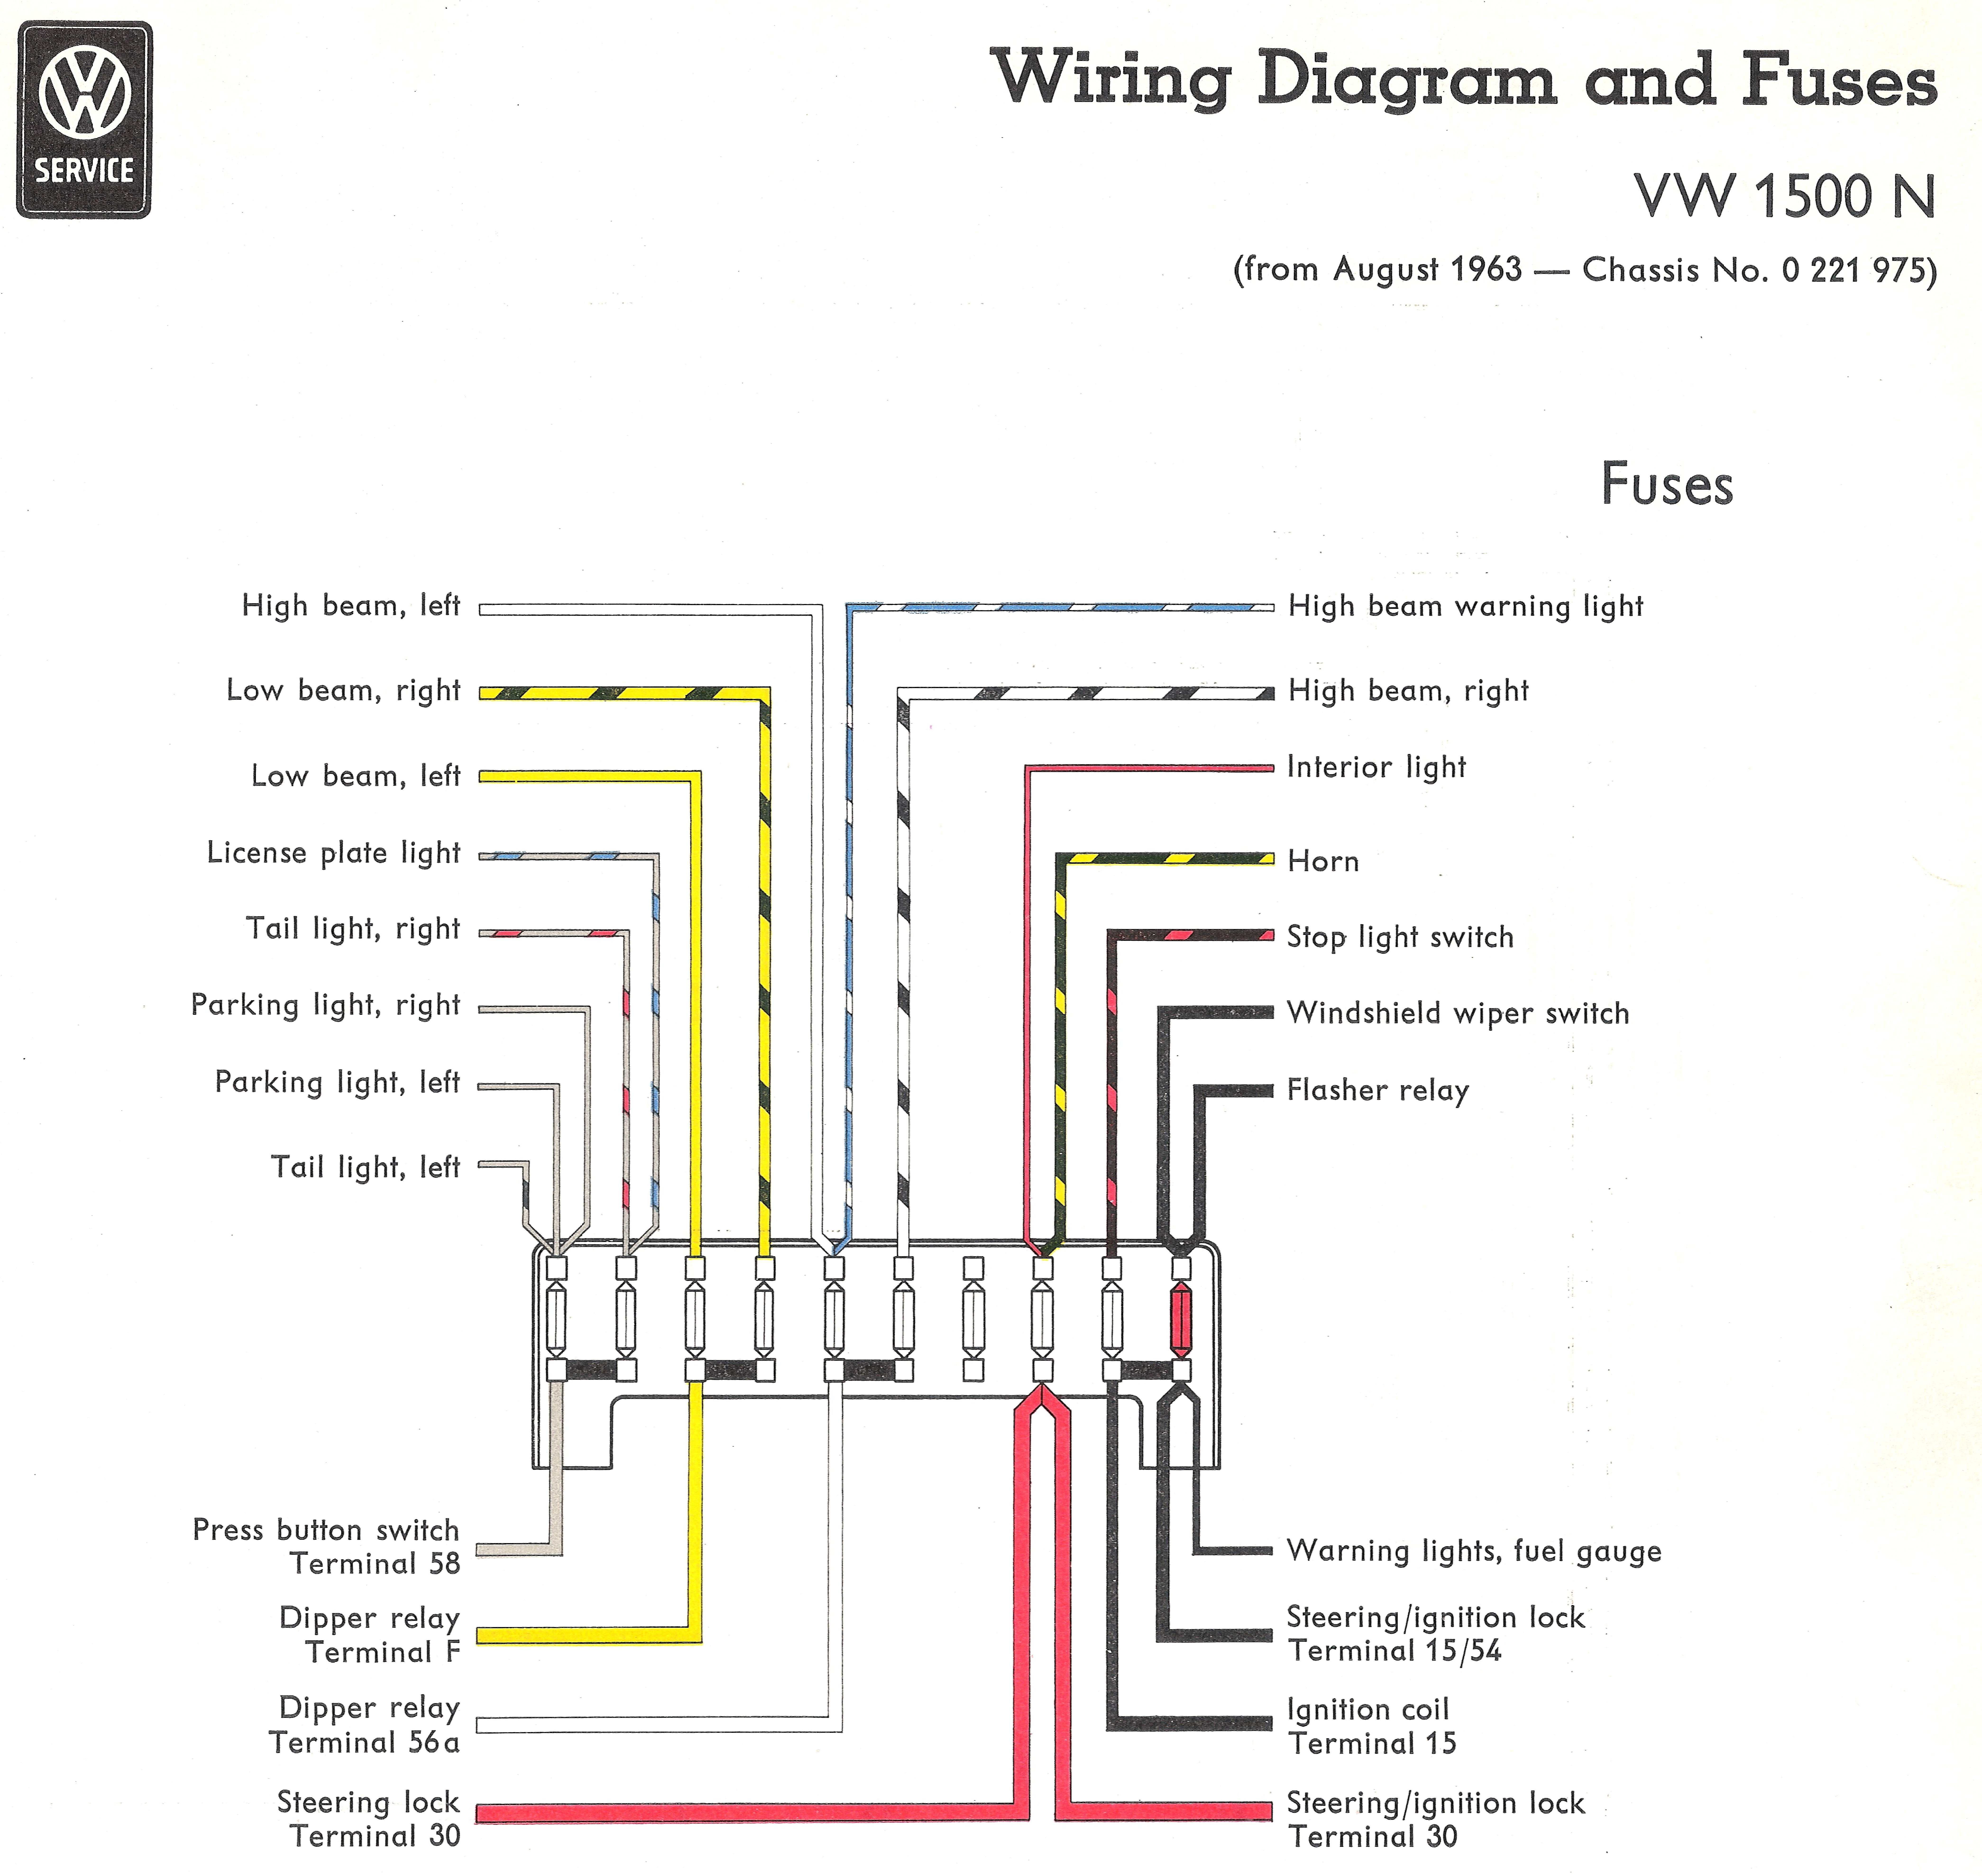 type3_1500n fuse 1200dpi thesamba com type 3 wiring diagrams fuse panel wiring diagram at n-0.co